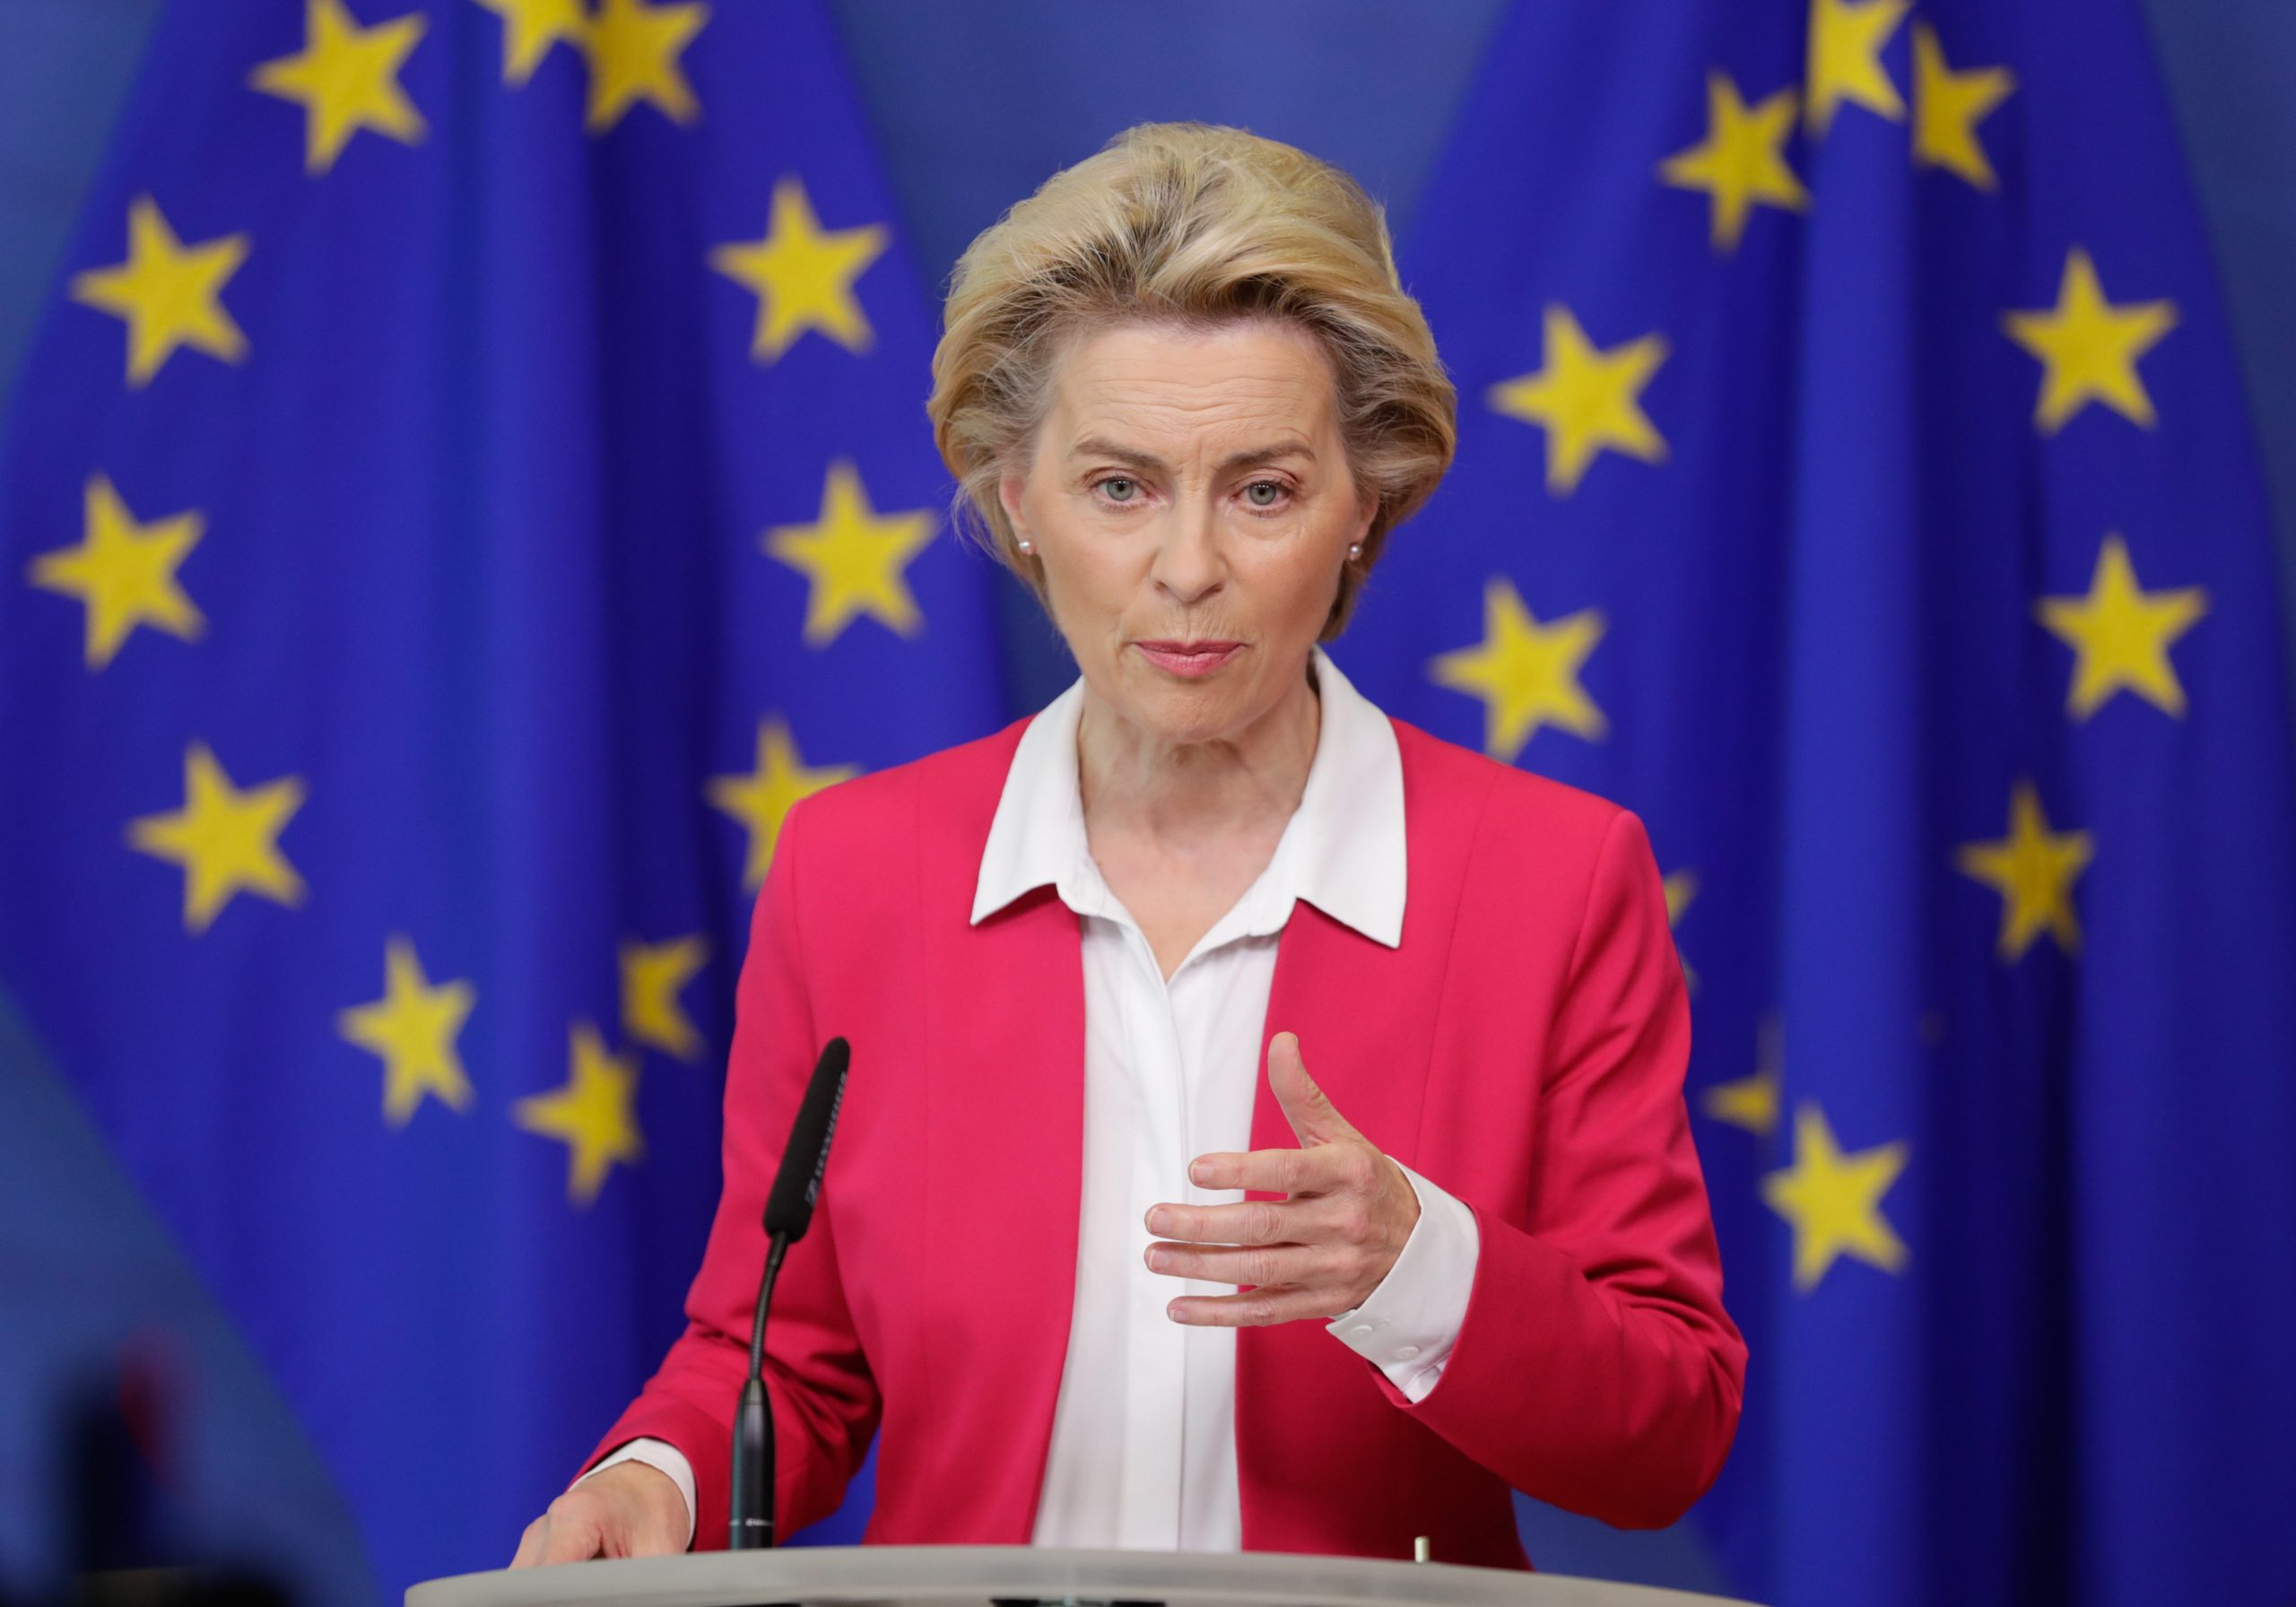 EC Criticizes Hungarian Ban on 'Promotion of Homosexuality' as Discriminatory